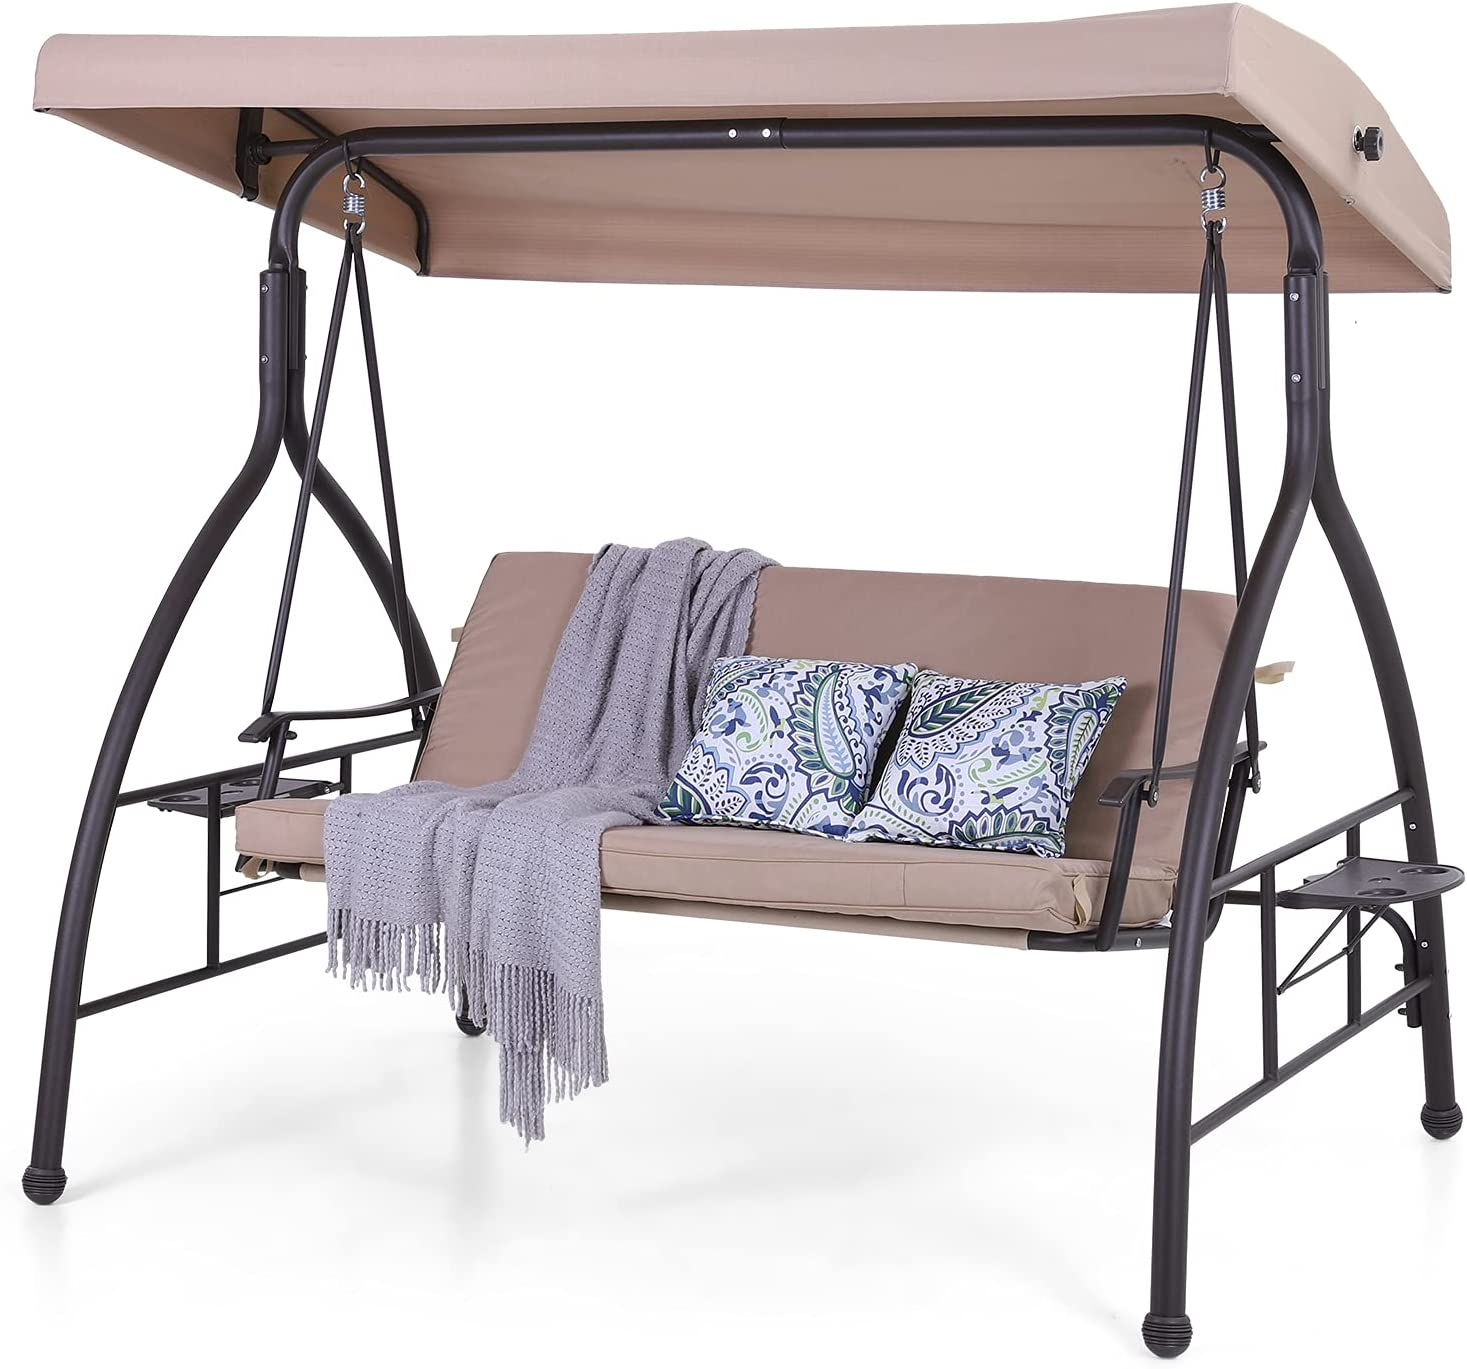 PHI VILLA 3-Seat Patio Swing with Canopy,Outdoor Swing with Retractable Side Table and Removable Cushion,Porch Swing Chair/Bench for Patio, Garden, Poolside, Balcony, Backyard,Alloy Steel Frame,Brown